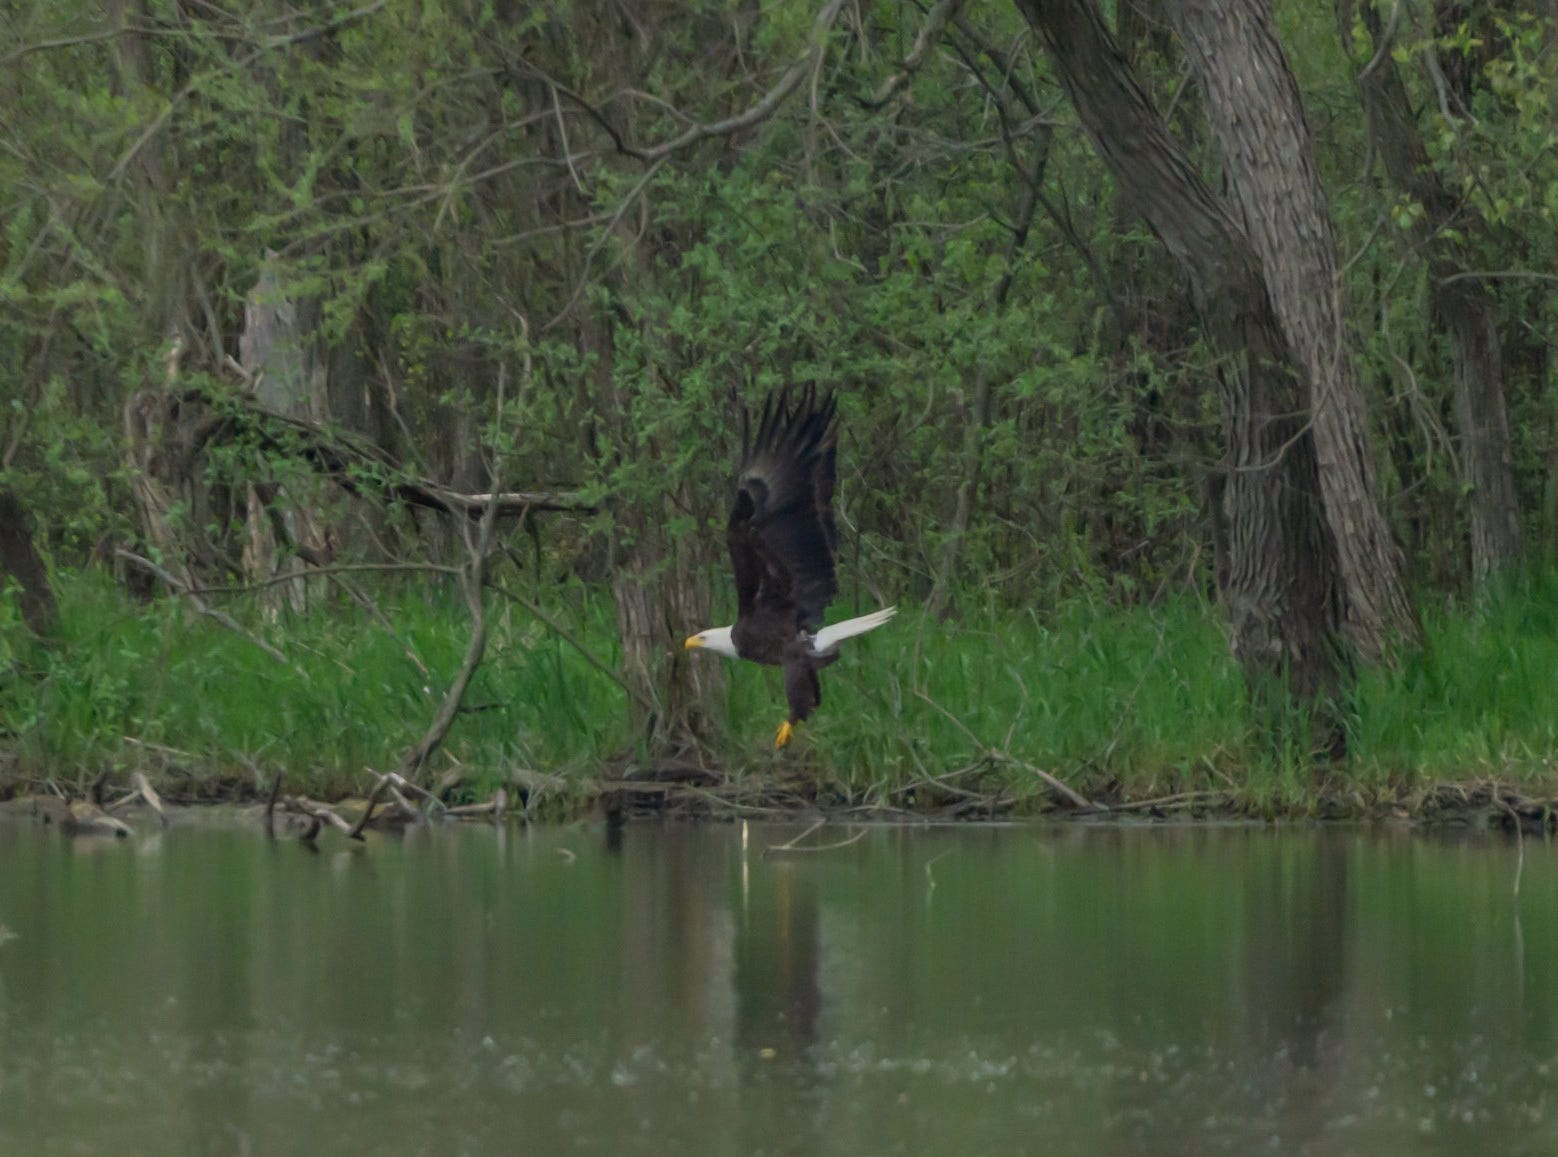 A bald eagle flies over the water at Summit Lake State Park.  Bald eagles have become increasingly present in ECI in recent years.